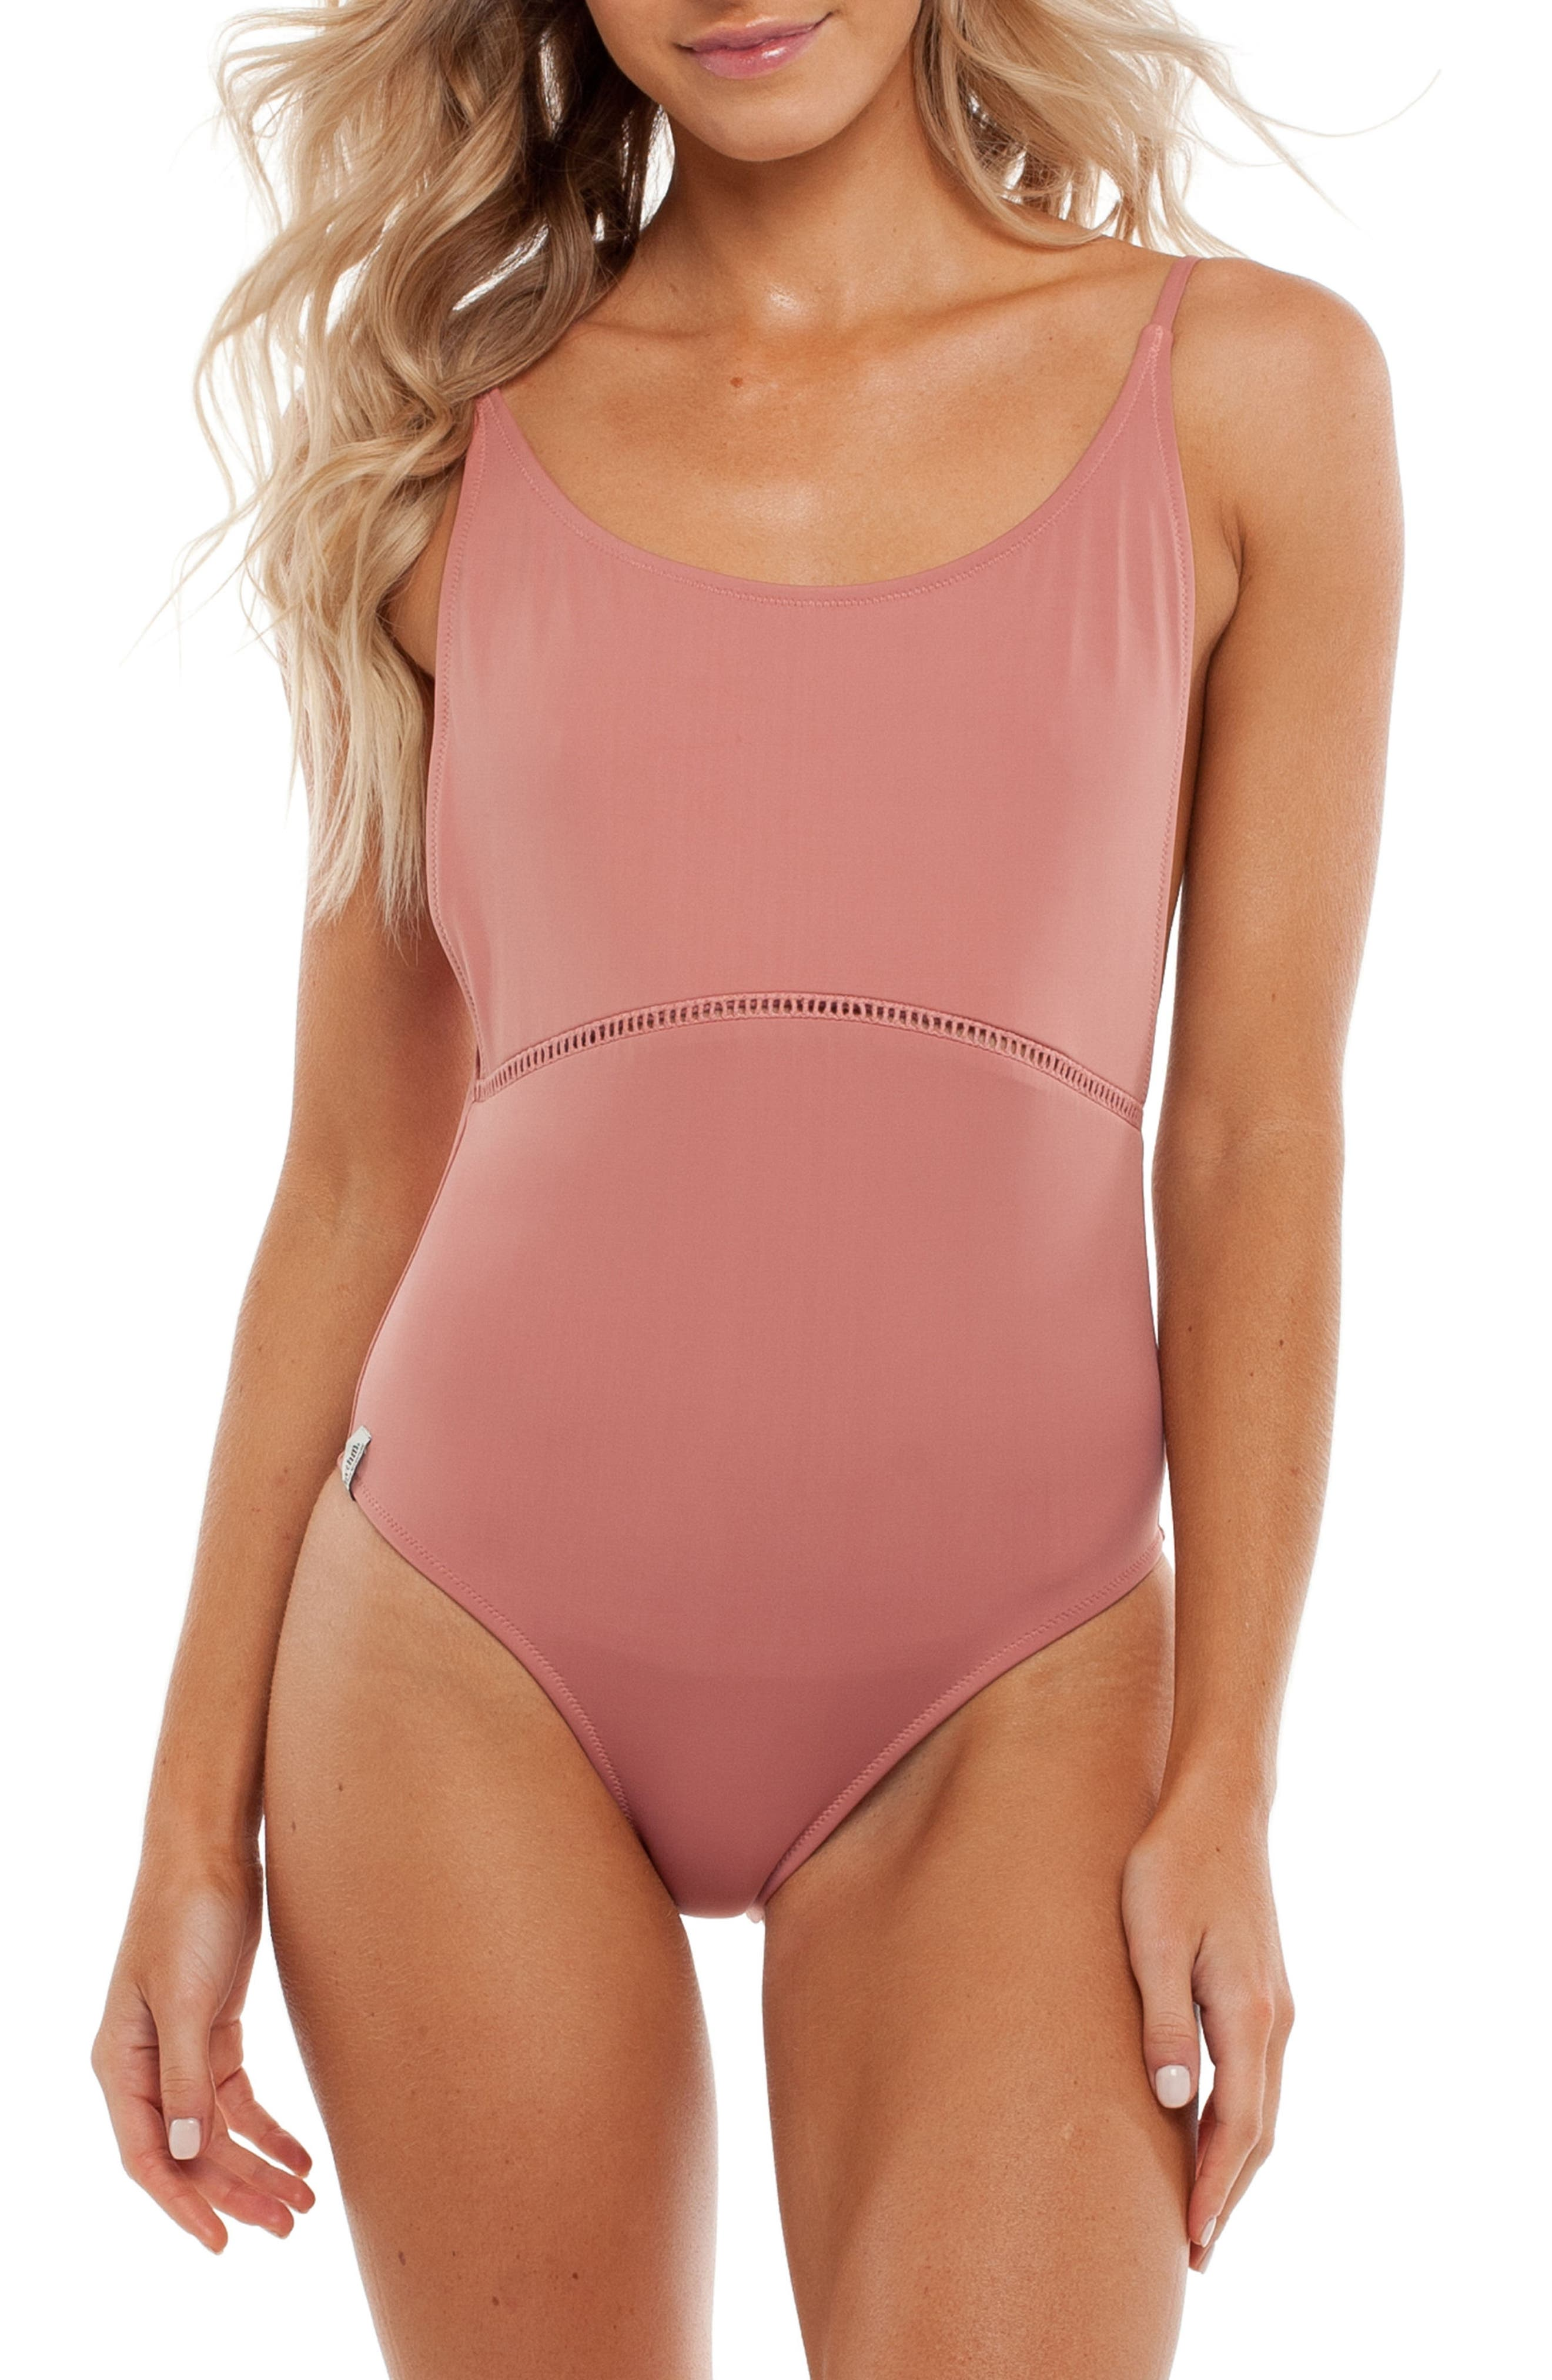 My Scoop One-Piece Swimsuit,                             Main thumbnail 1, color,                             660